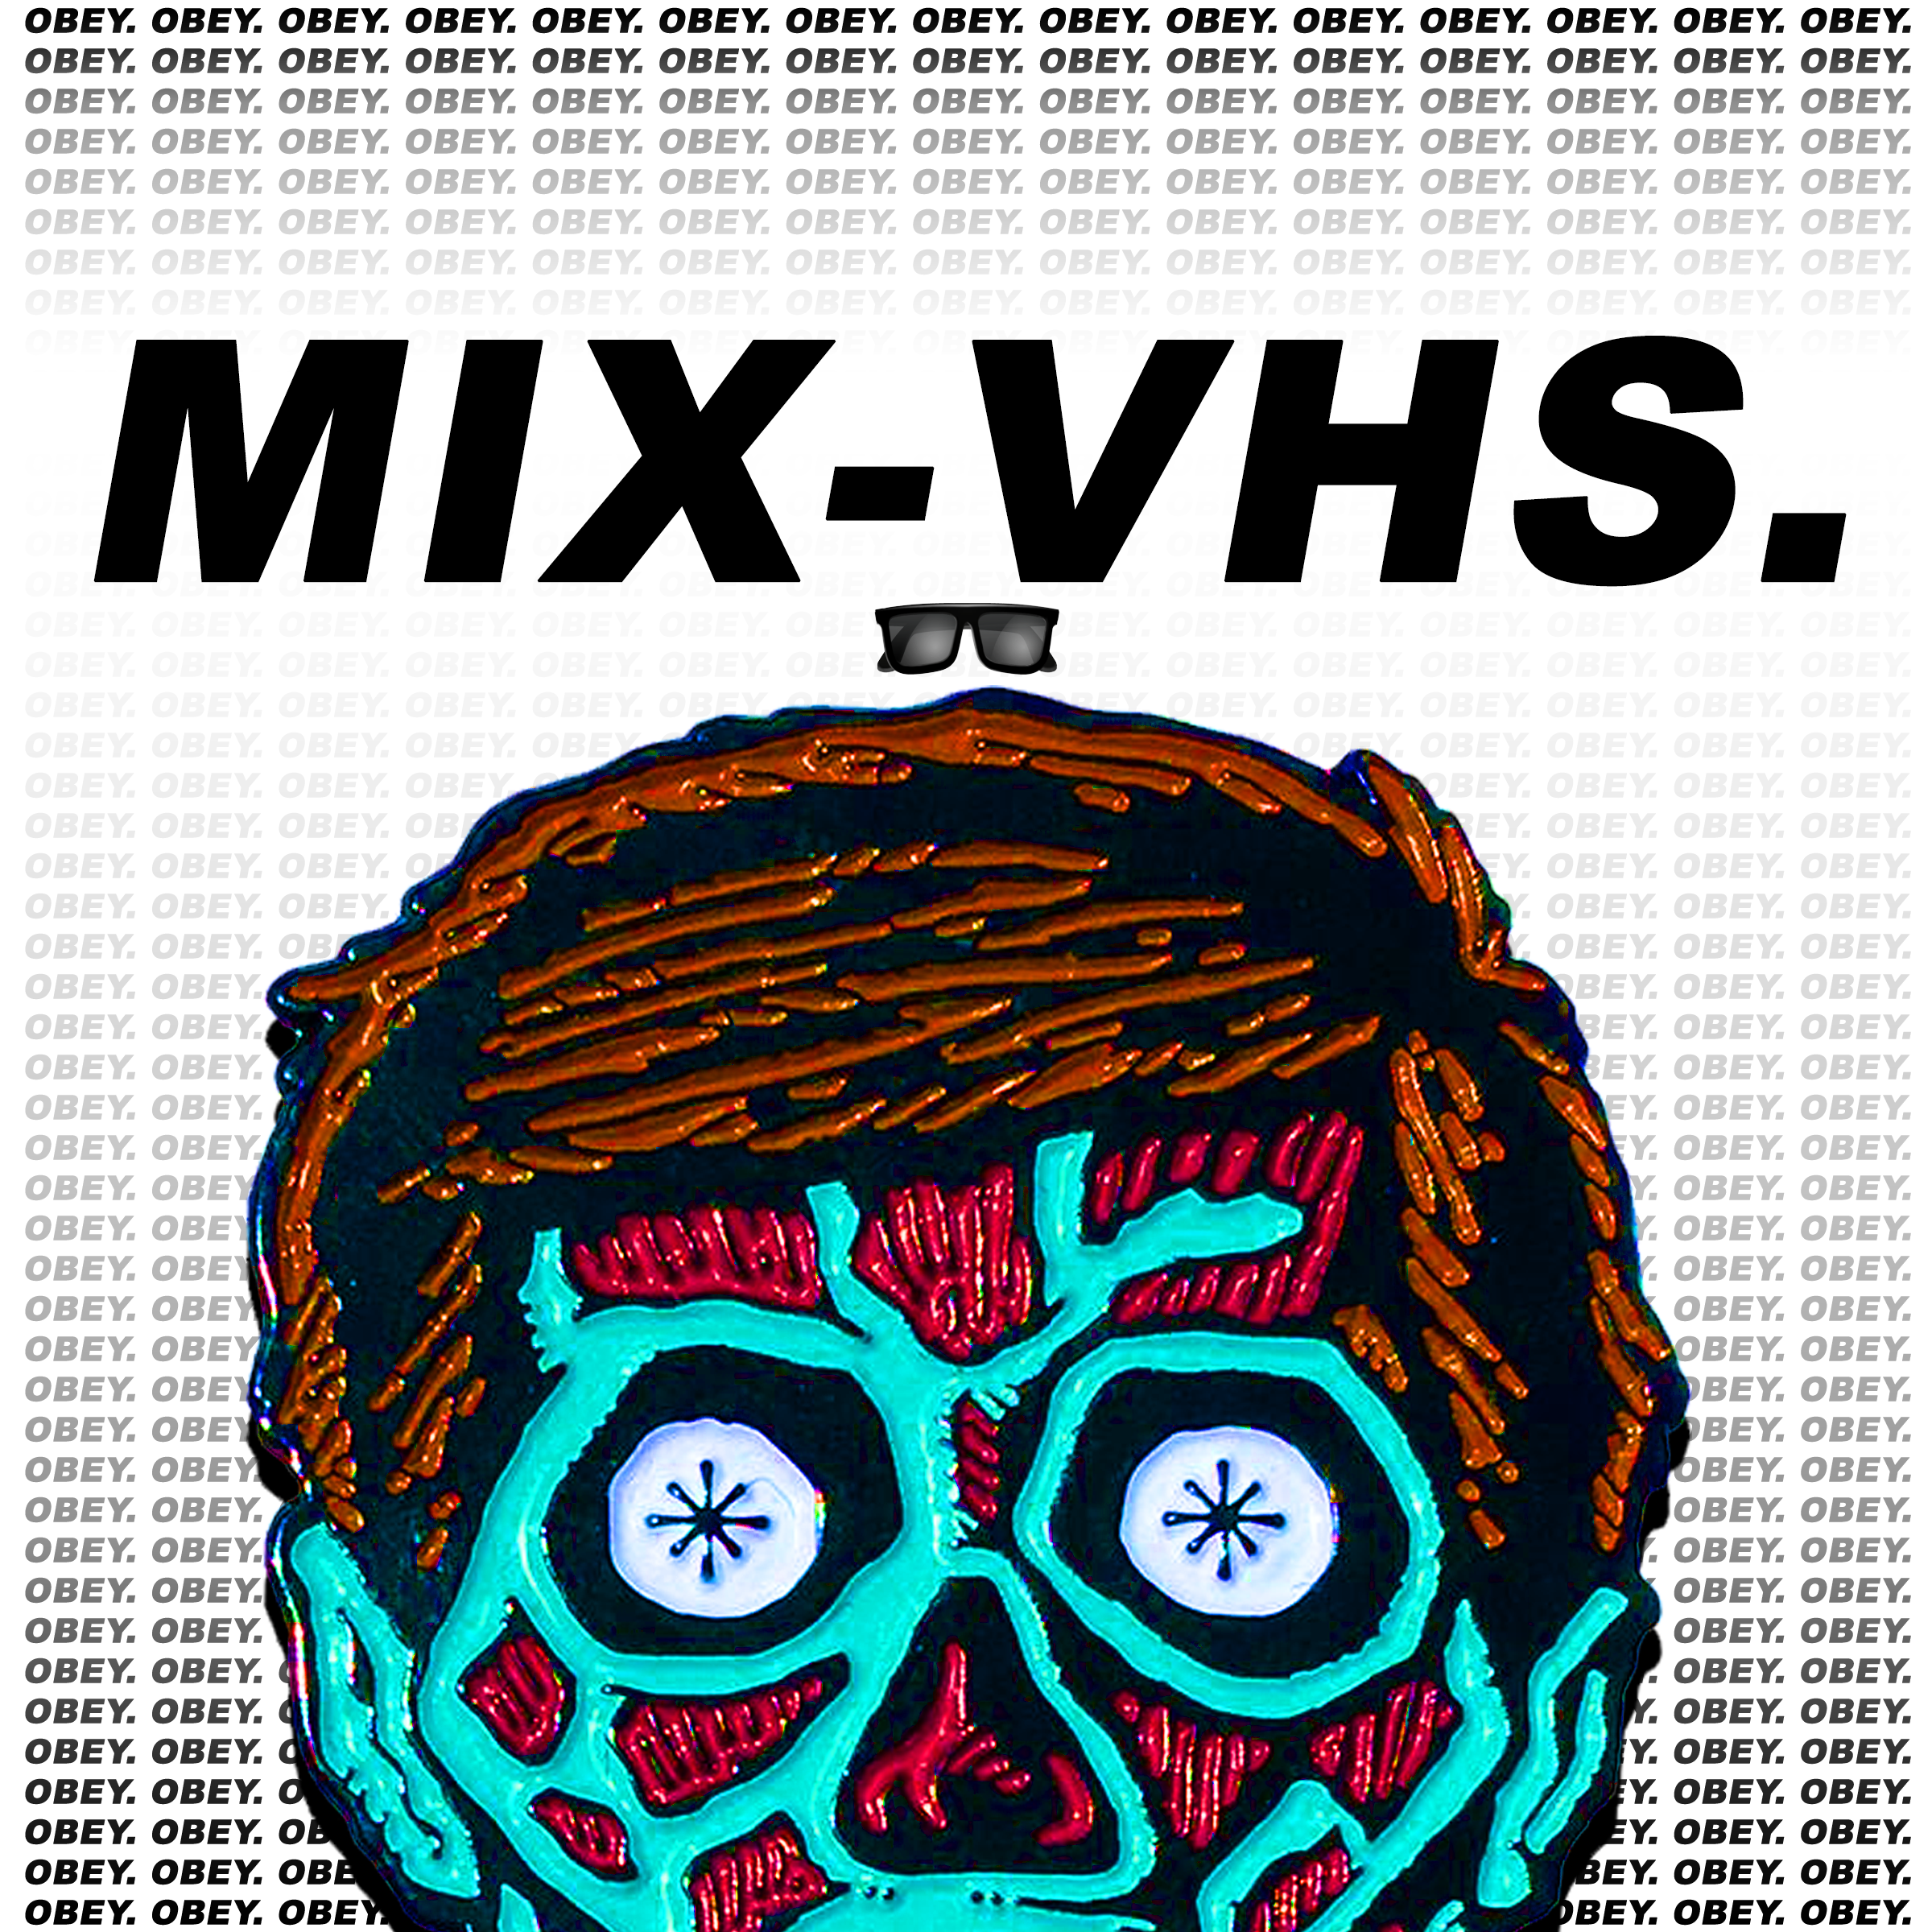 Week 065 - We've got a jam PACKED MIX/VHS for you this week!Grab a cold beer (or 3) + check out these diverse picks for a lil' screen time that our blog contributors came up with to help you wind down a bit early for the weekend. Sit back and enjoy!